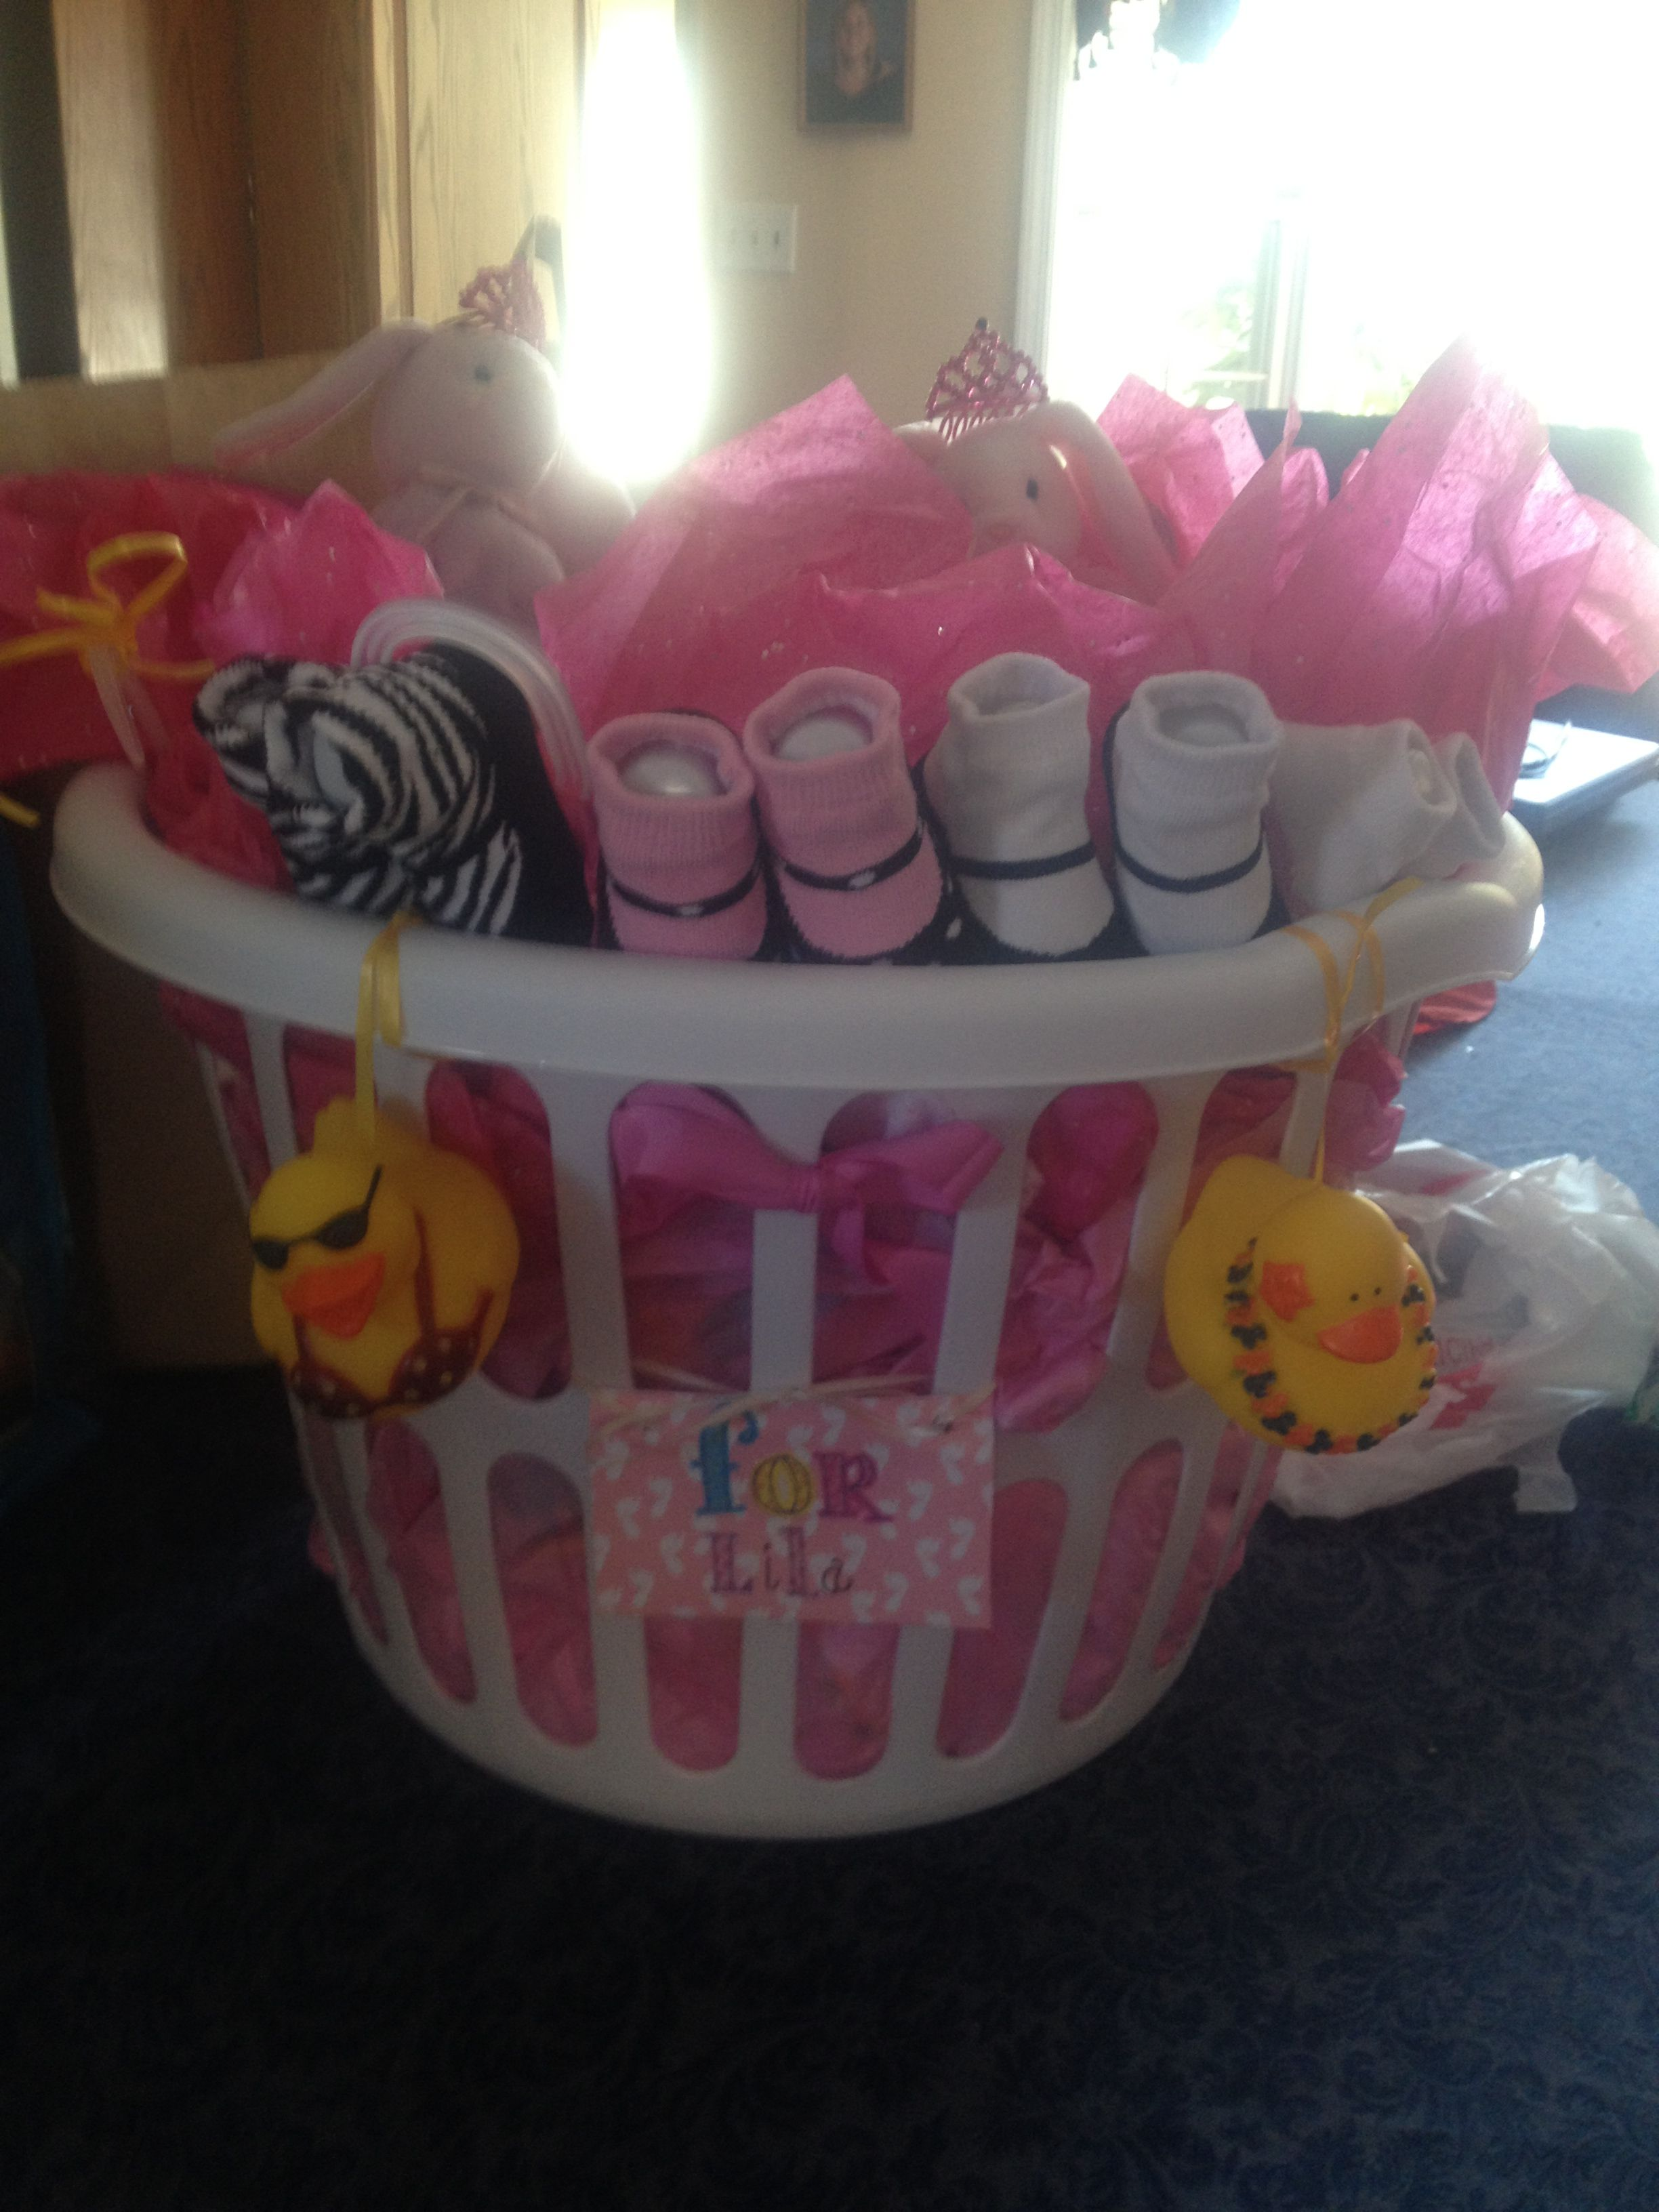 Baby Laundry Basket Gift Baby Shower Gift Fill A Laundry Basket With All The Baby